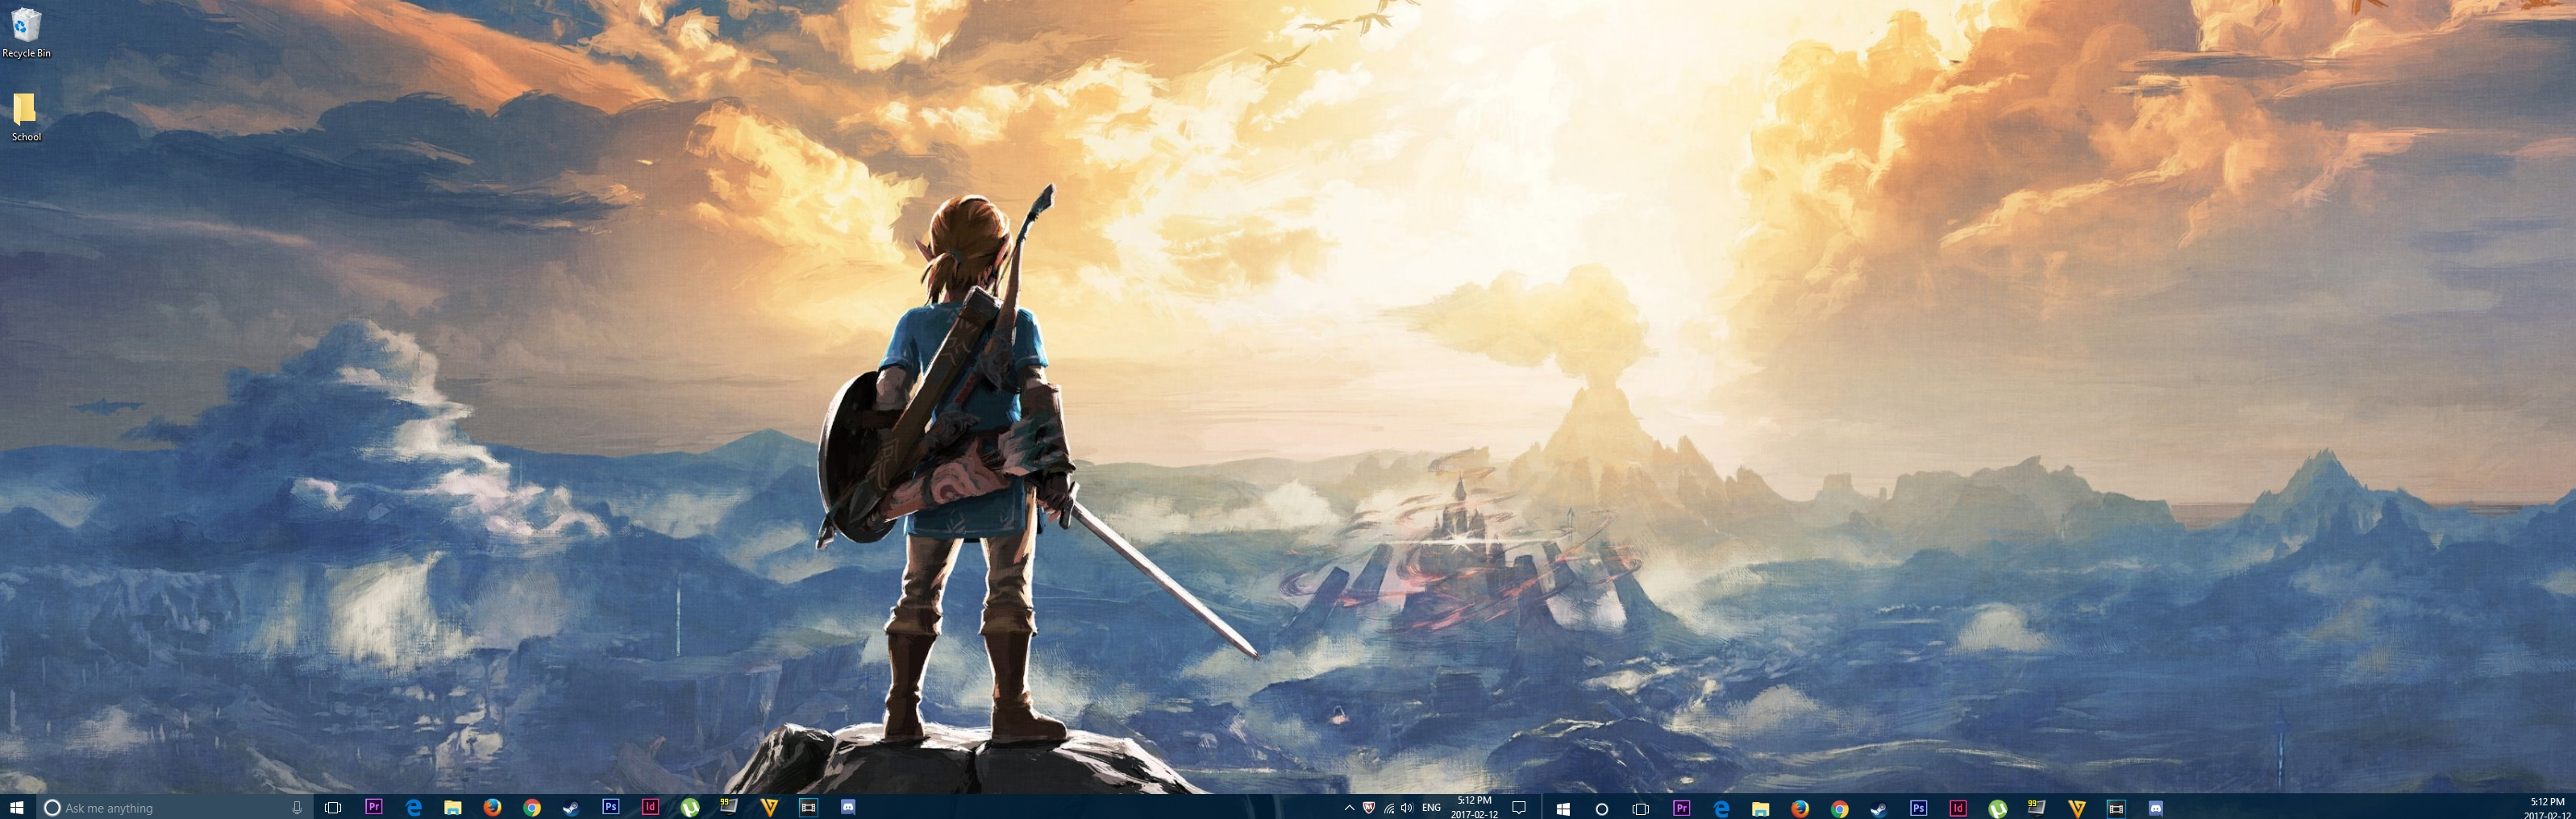 dual-monitor breath of the wild wallpaper looking pretty sweet